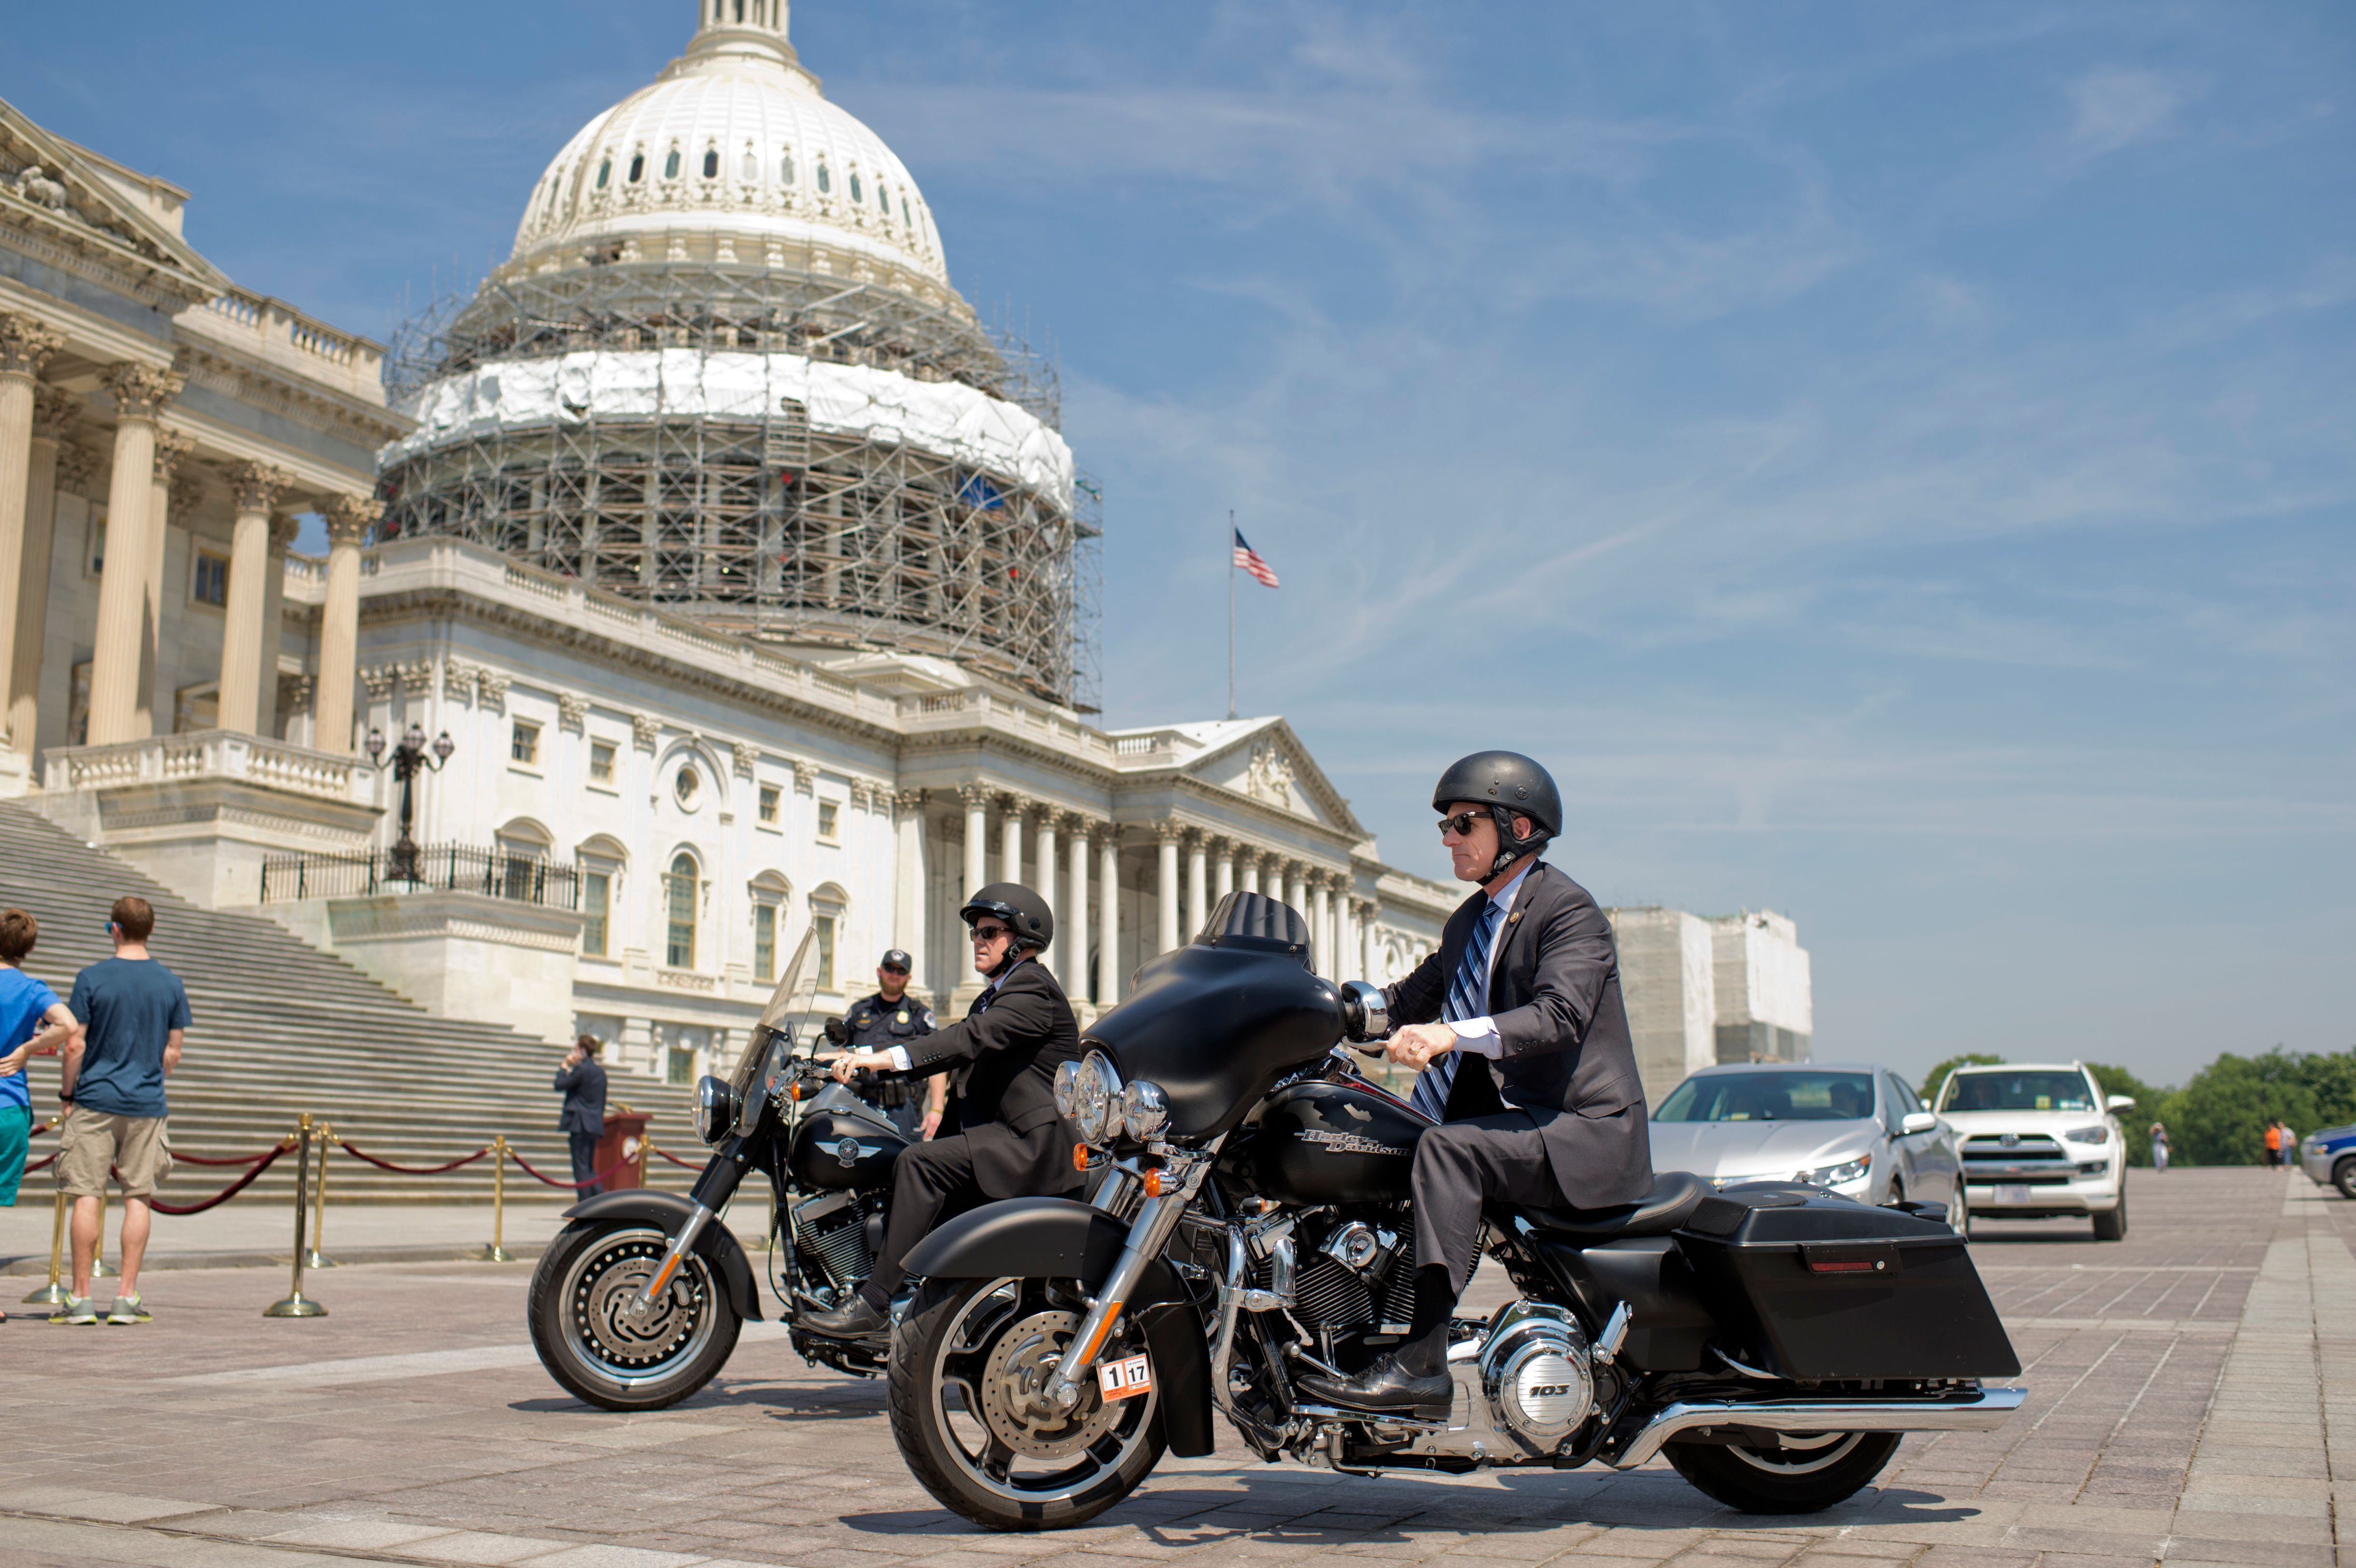 UNITED STATES - MAY 26: Reps. Scott Rigell, R-Va., right, and Reid Ribble, R-Wis., ride their Harley-Davidson motorcycles on the East Front of the Capitol after the last votes in the House which begins the Memorial Day recess, May 26, 2016. (Photo By Tom Williams/CQ Roll Call)